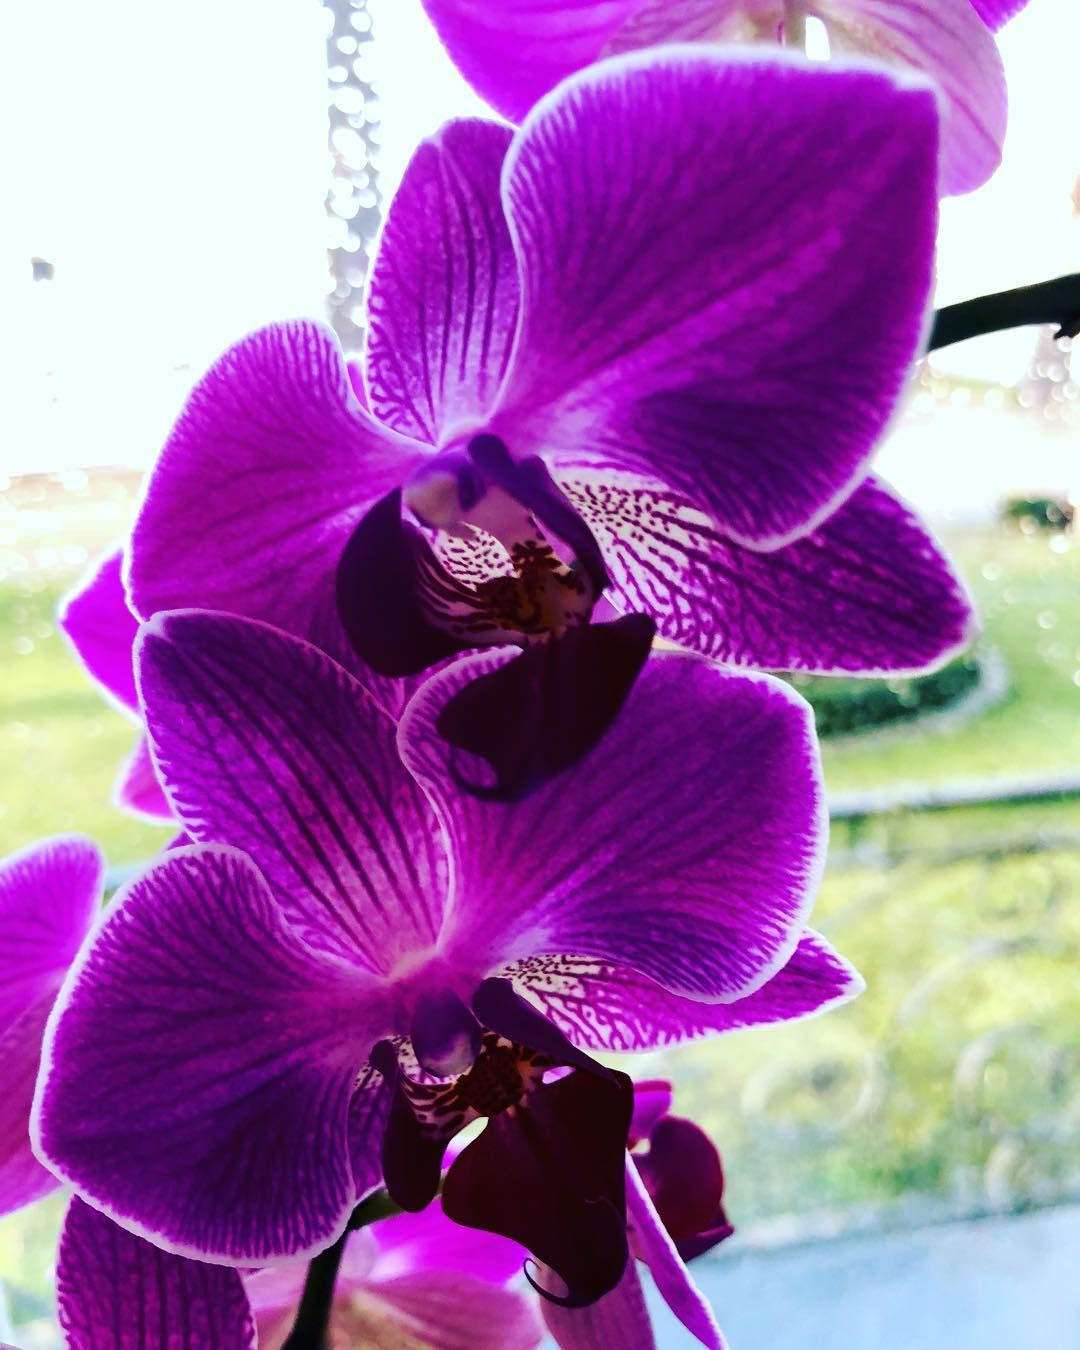 How to care for orchids so they live u grow them correctly so they